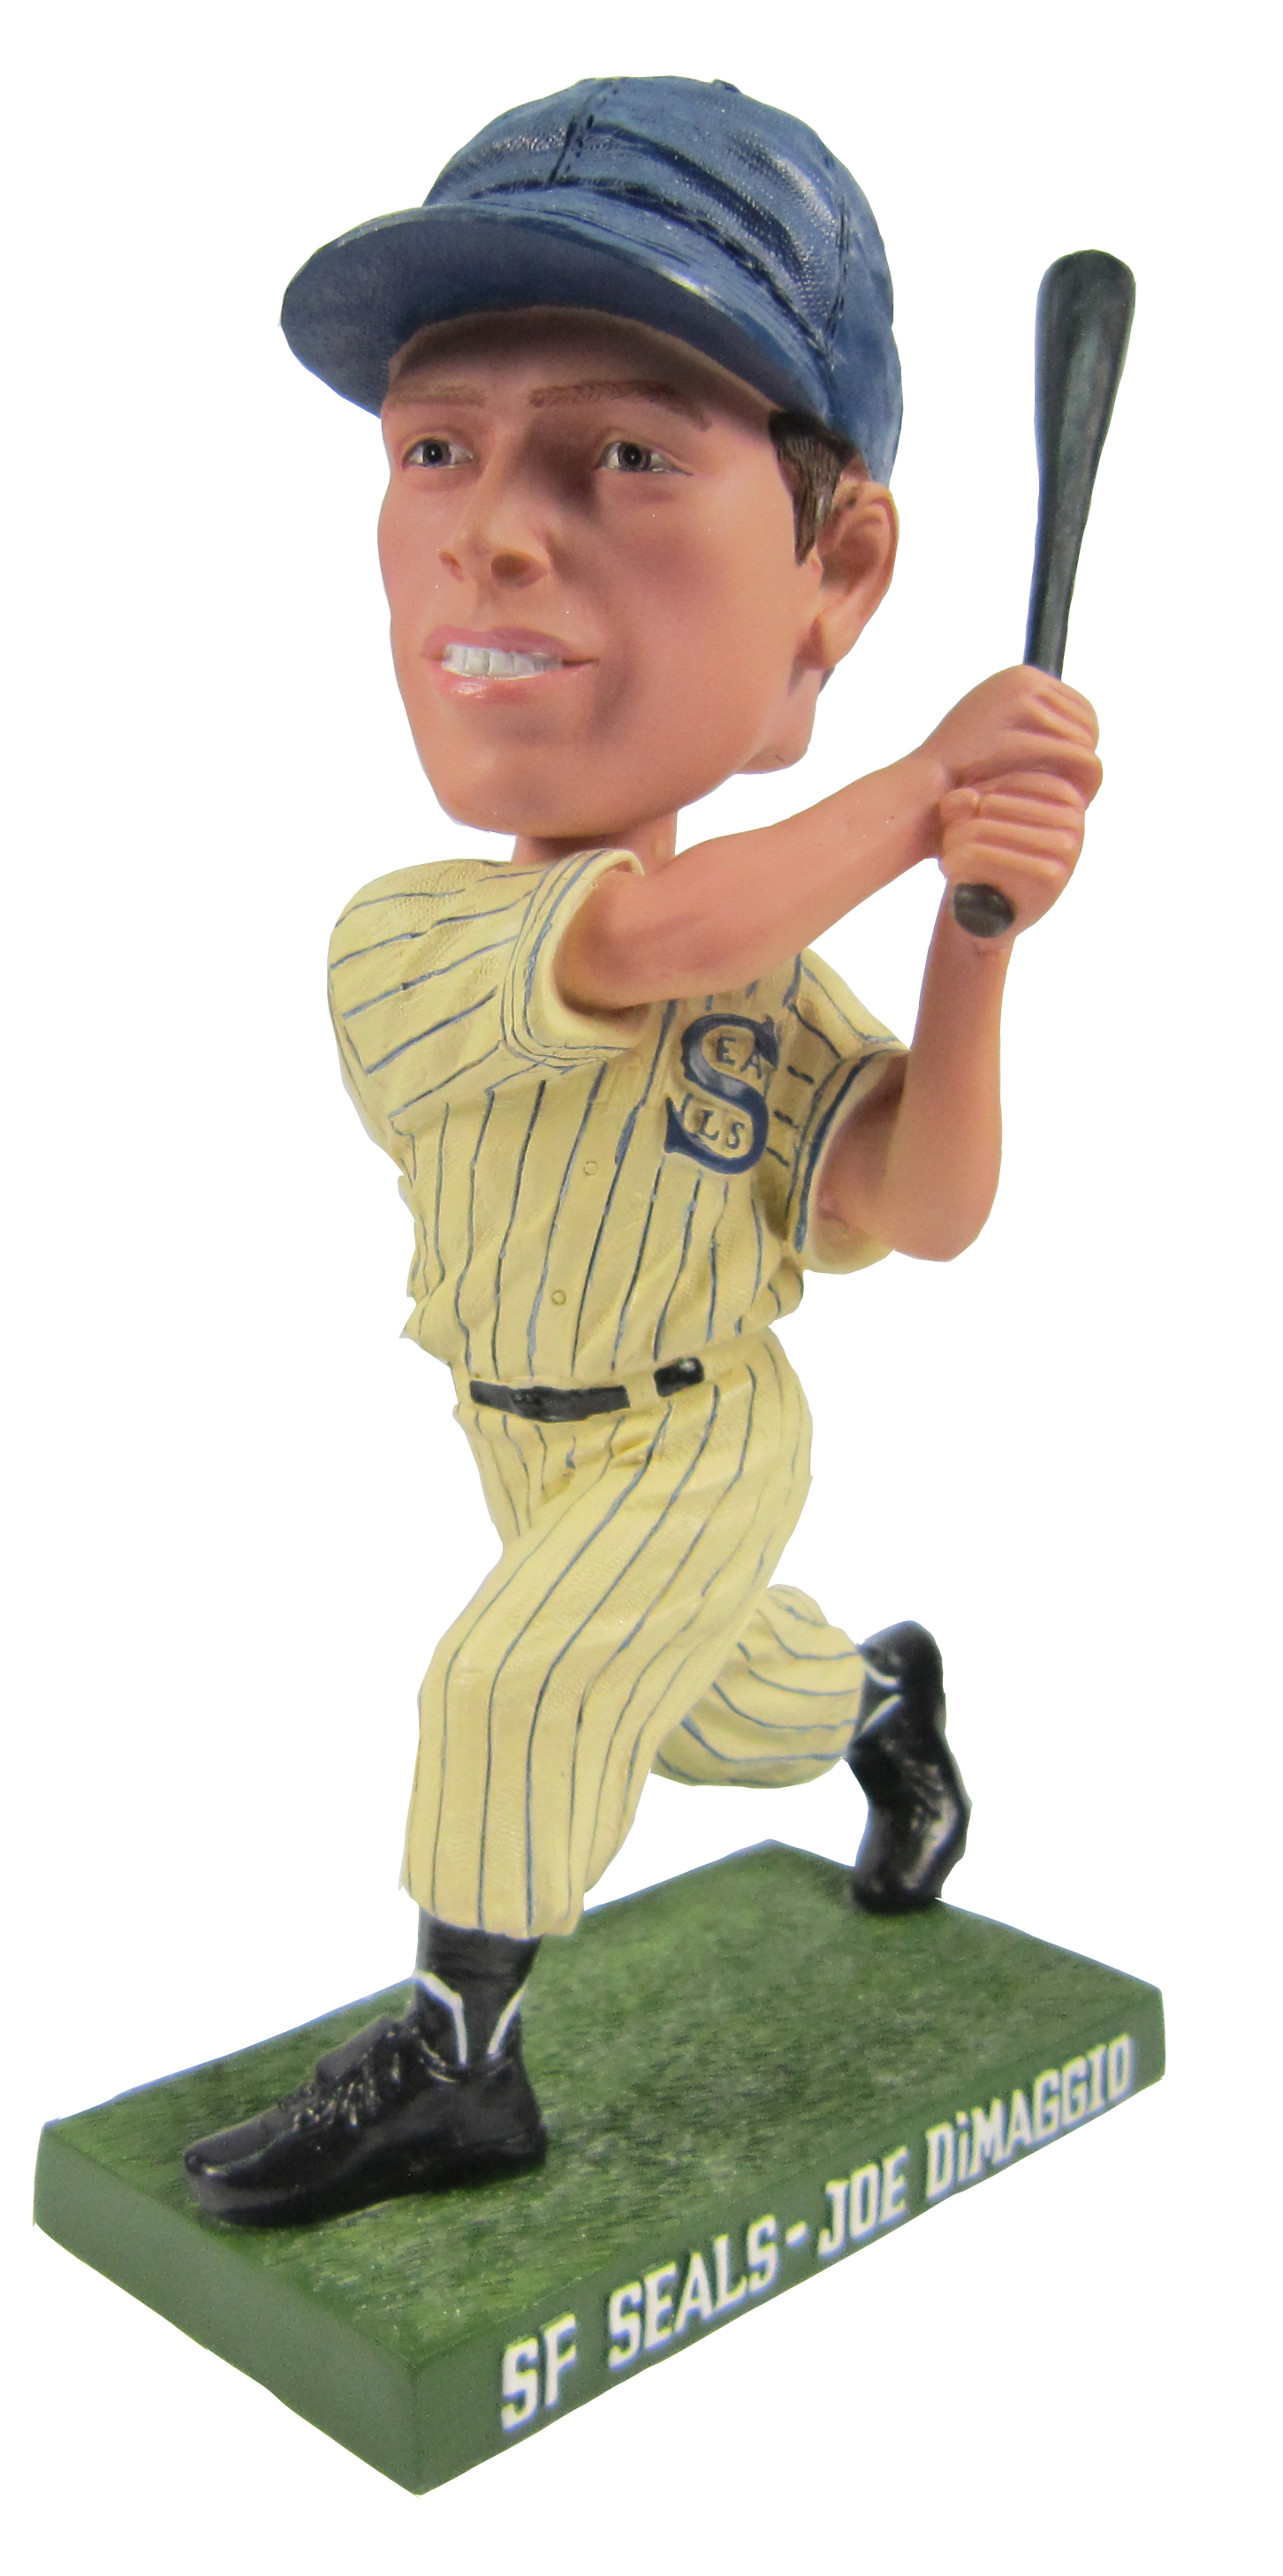 baseball jerseys bobble head S60